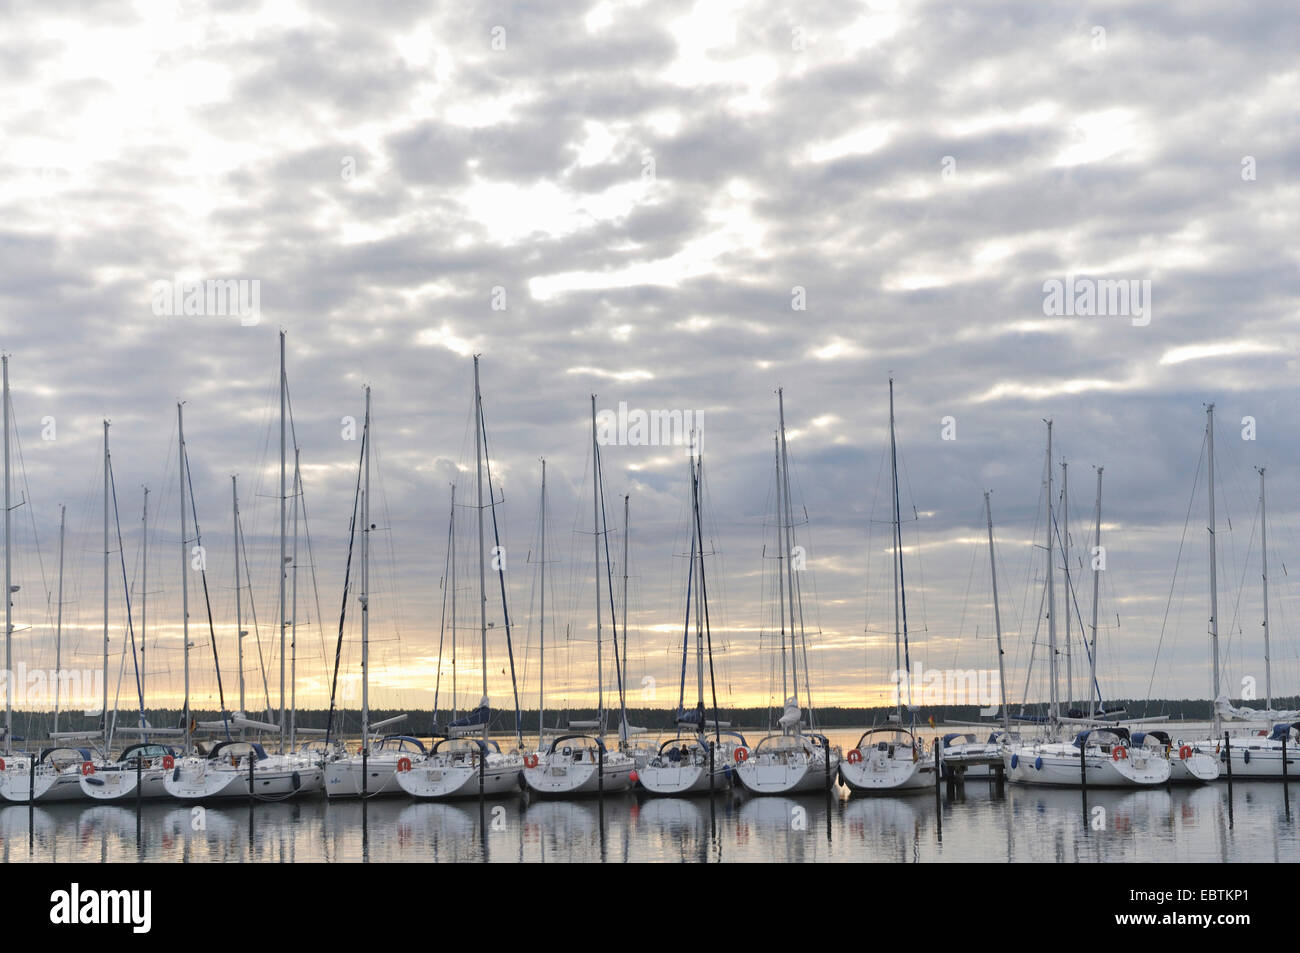 sailing boats in the yacht harbour at sunrise, Germany, Mecklenburg-Western Pomerania, Ruegen Stock Photo